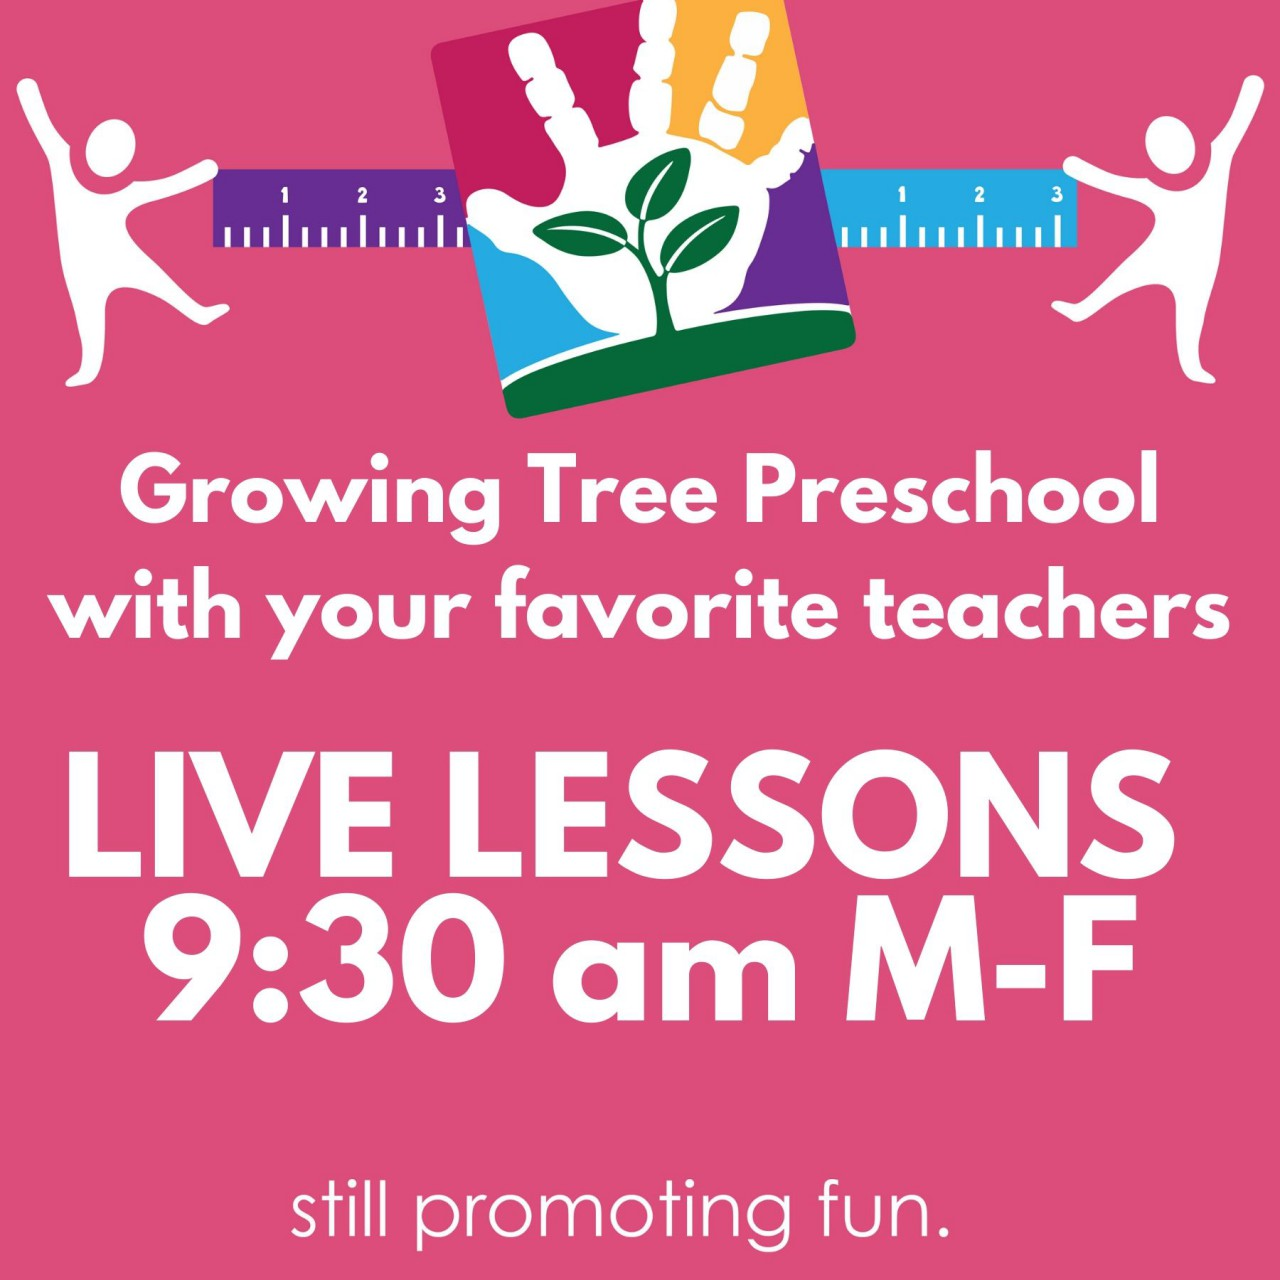 Visit Gurnee Park District's Facebook page every morning at 9:30 am for LIVE lessons with Growing Tree Preschool teachers.